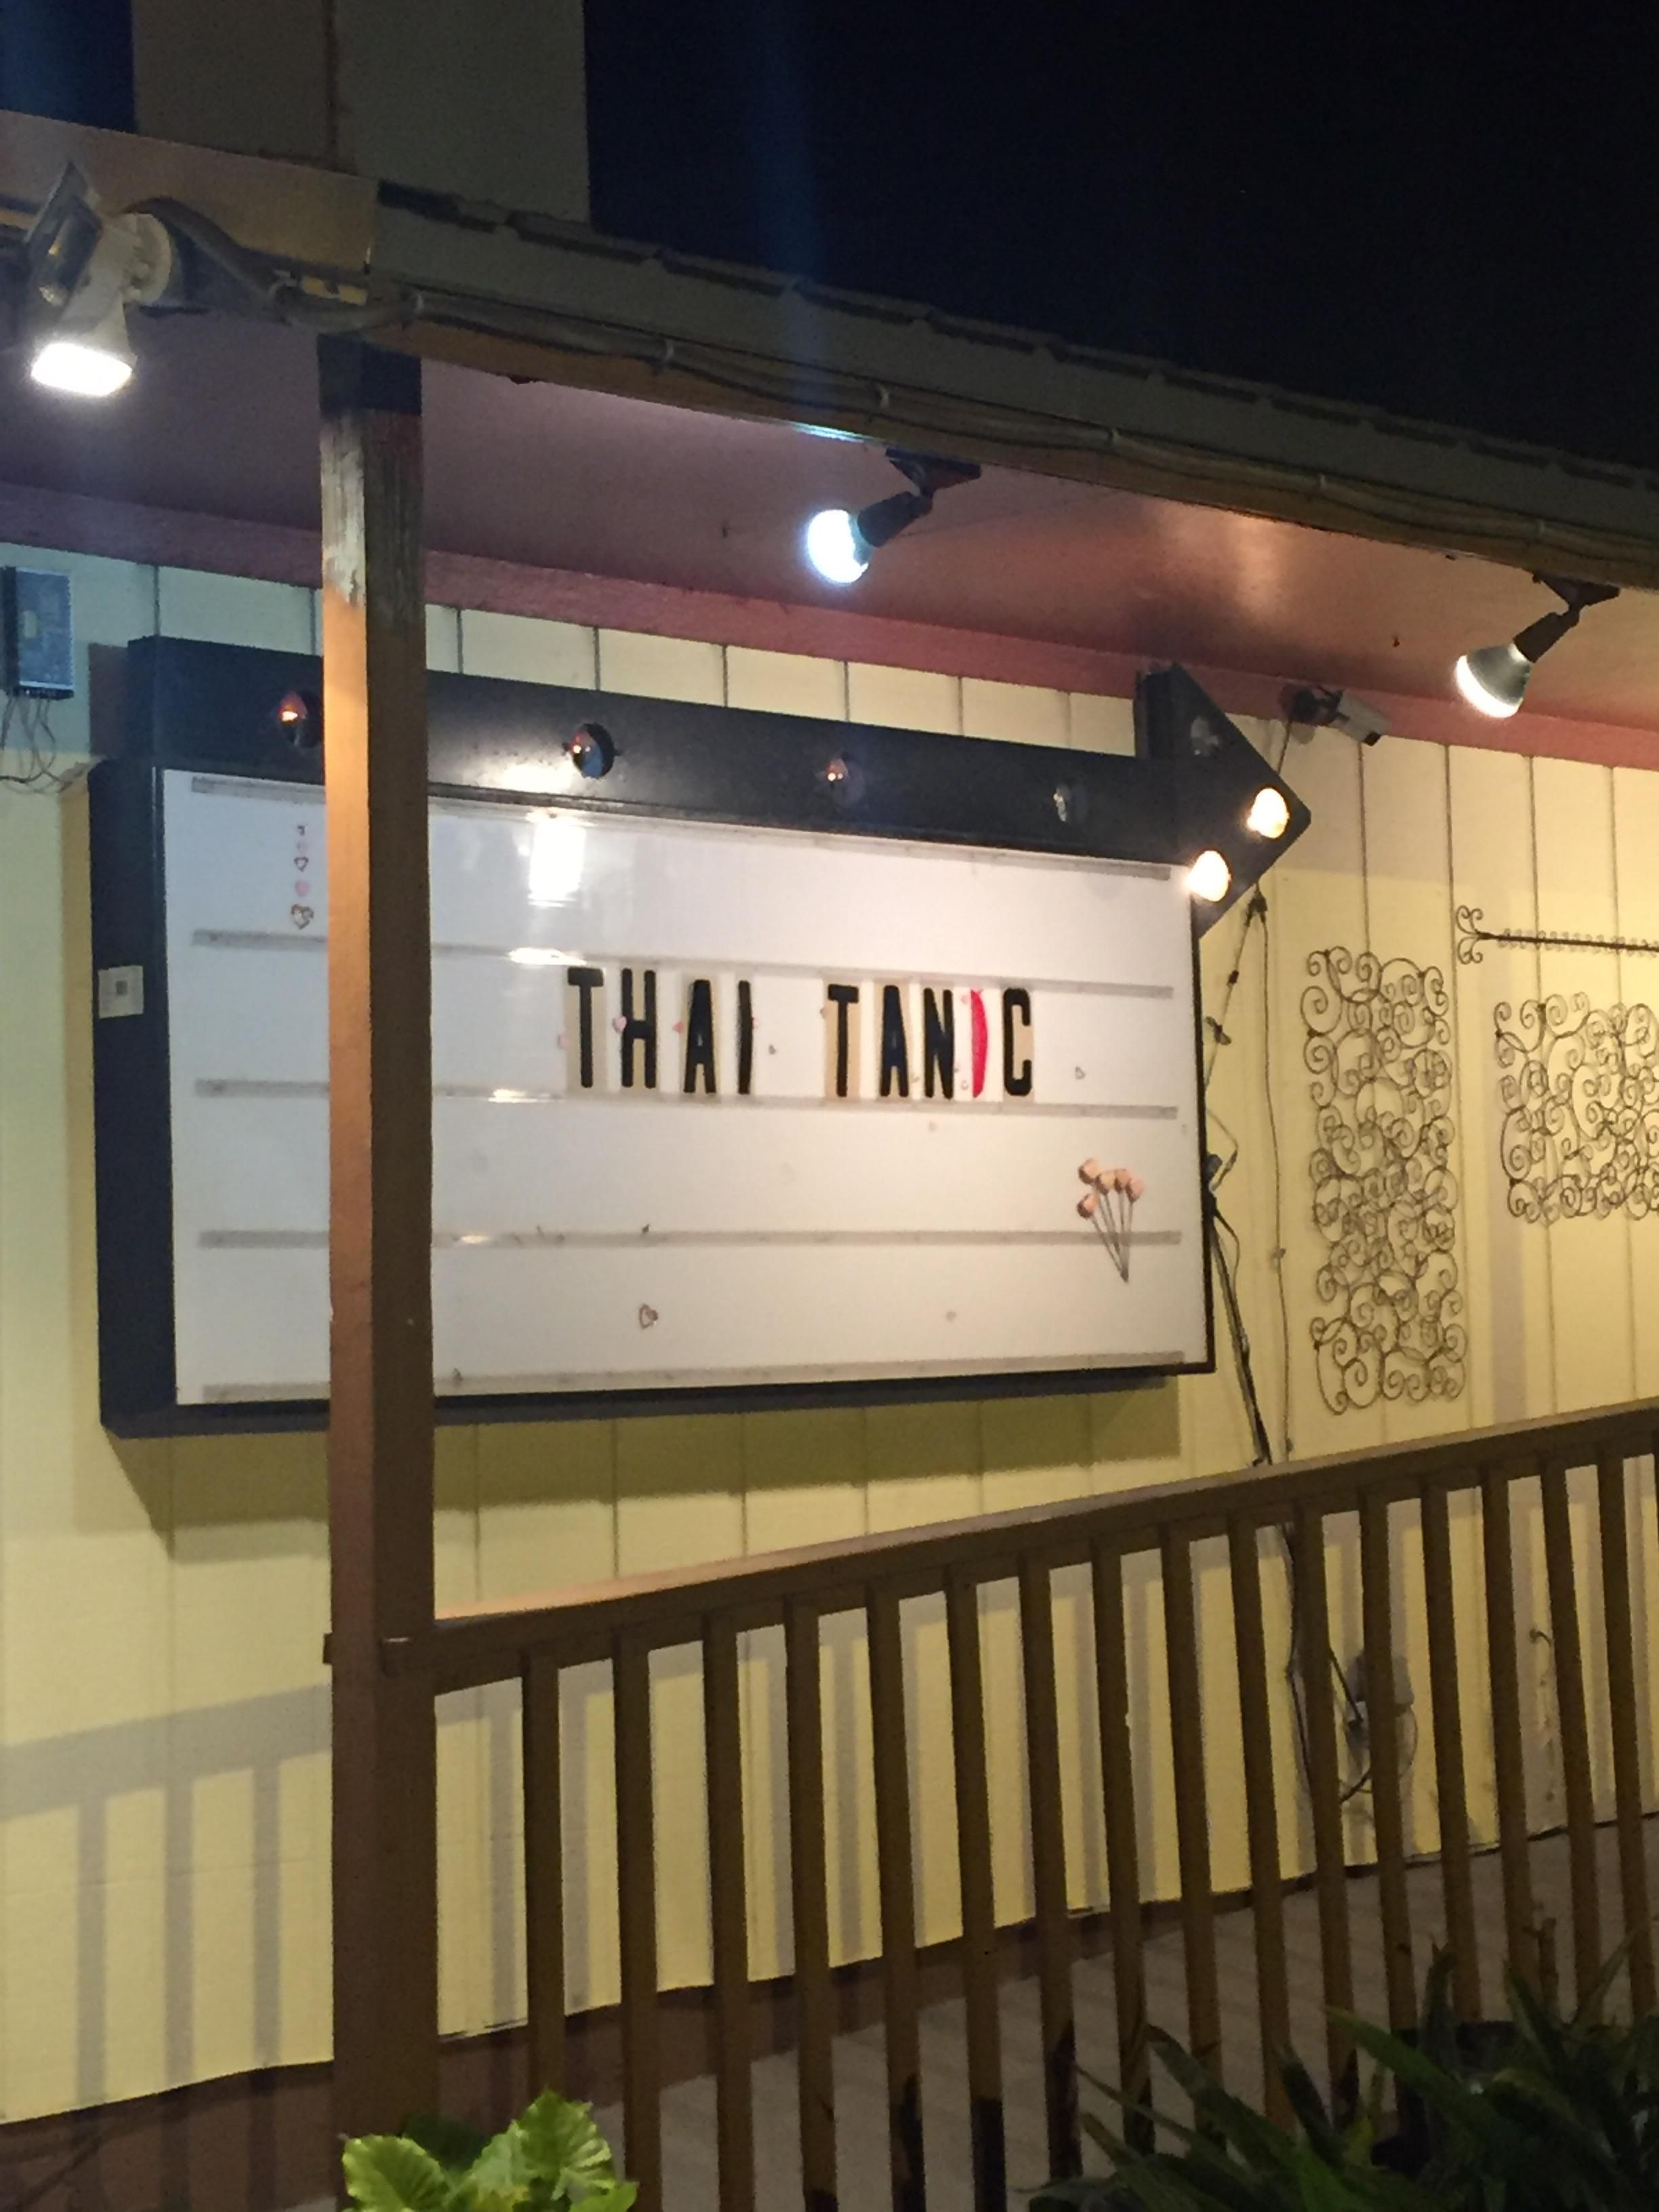 This Thai restaurant's name